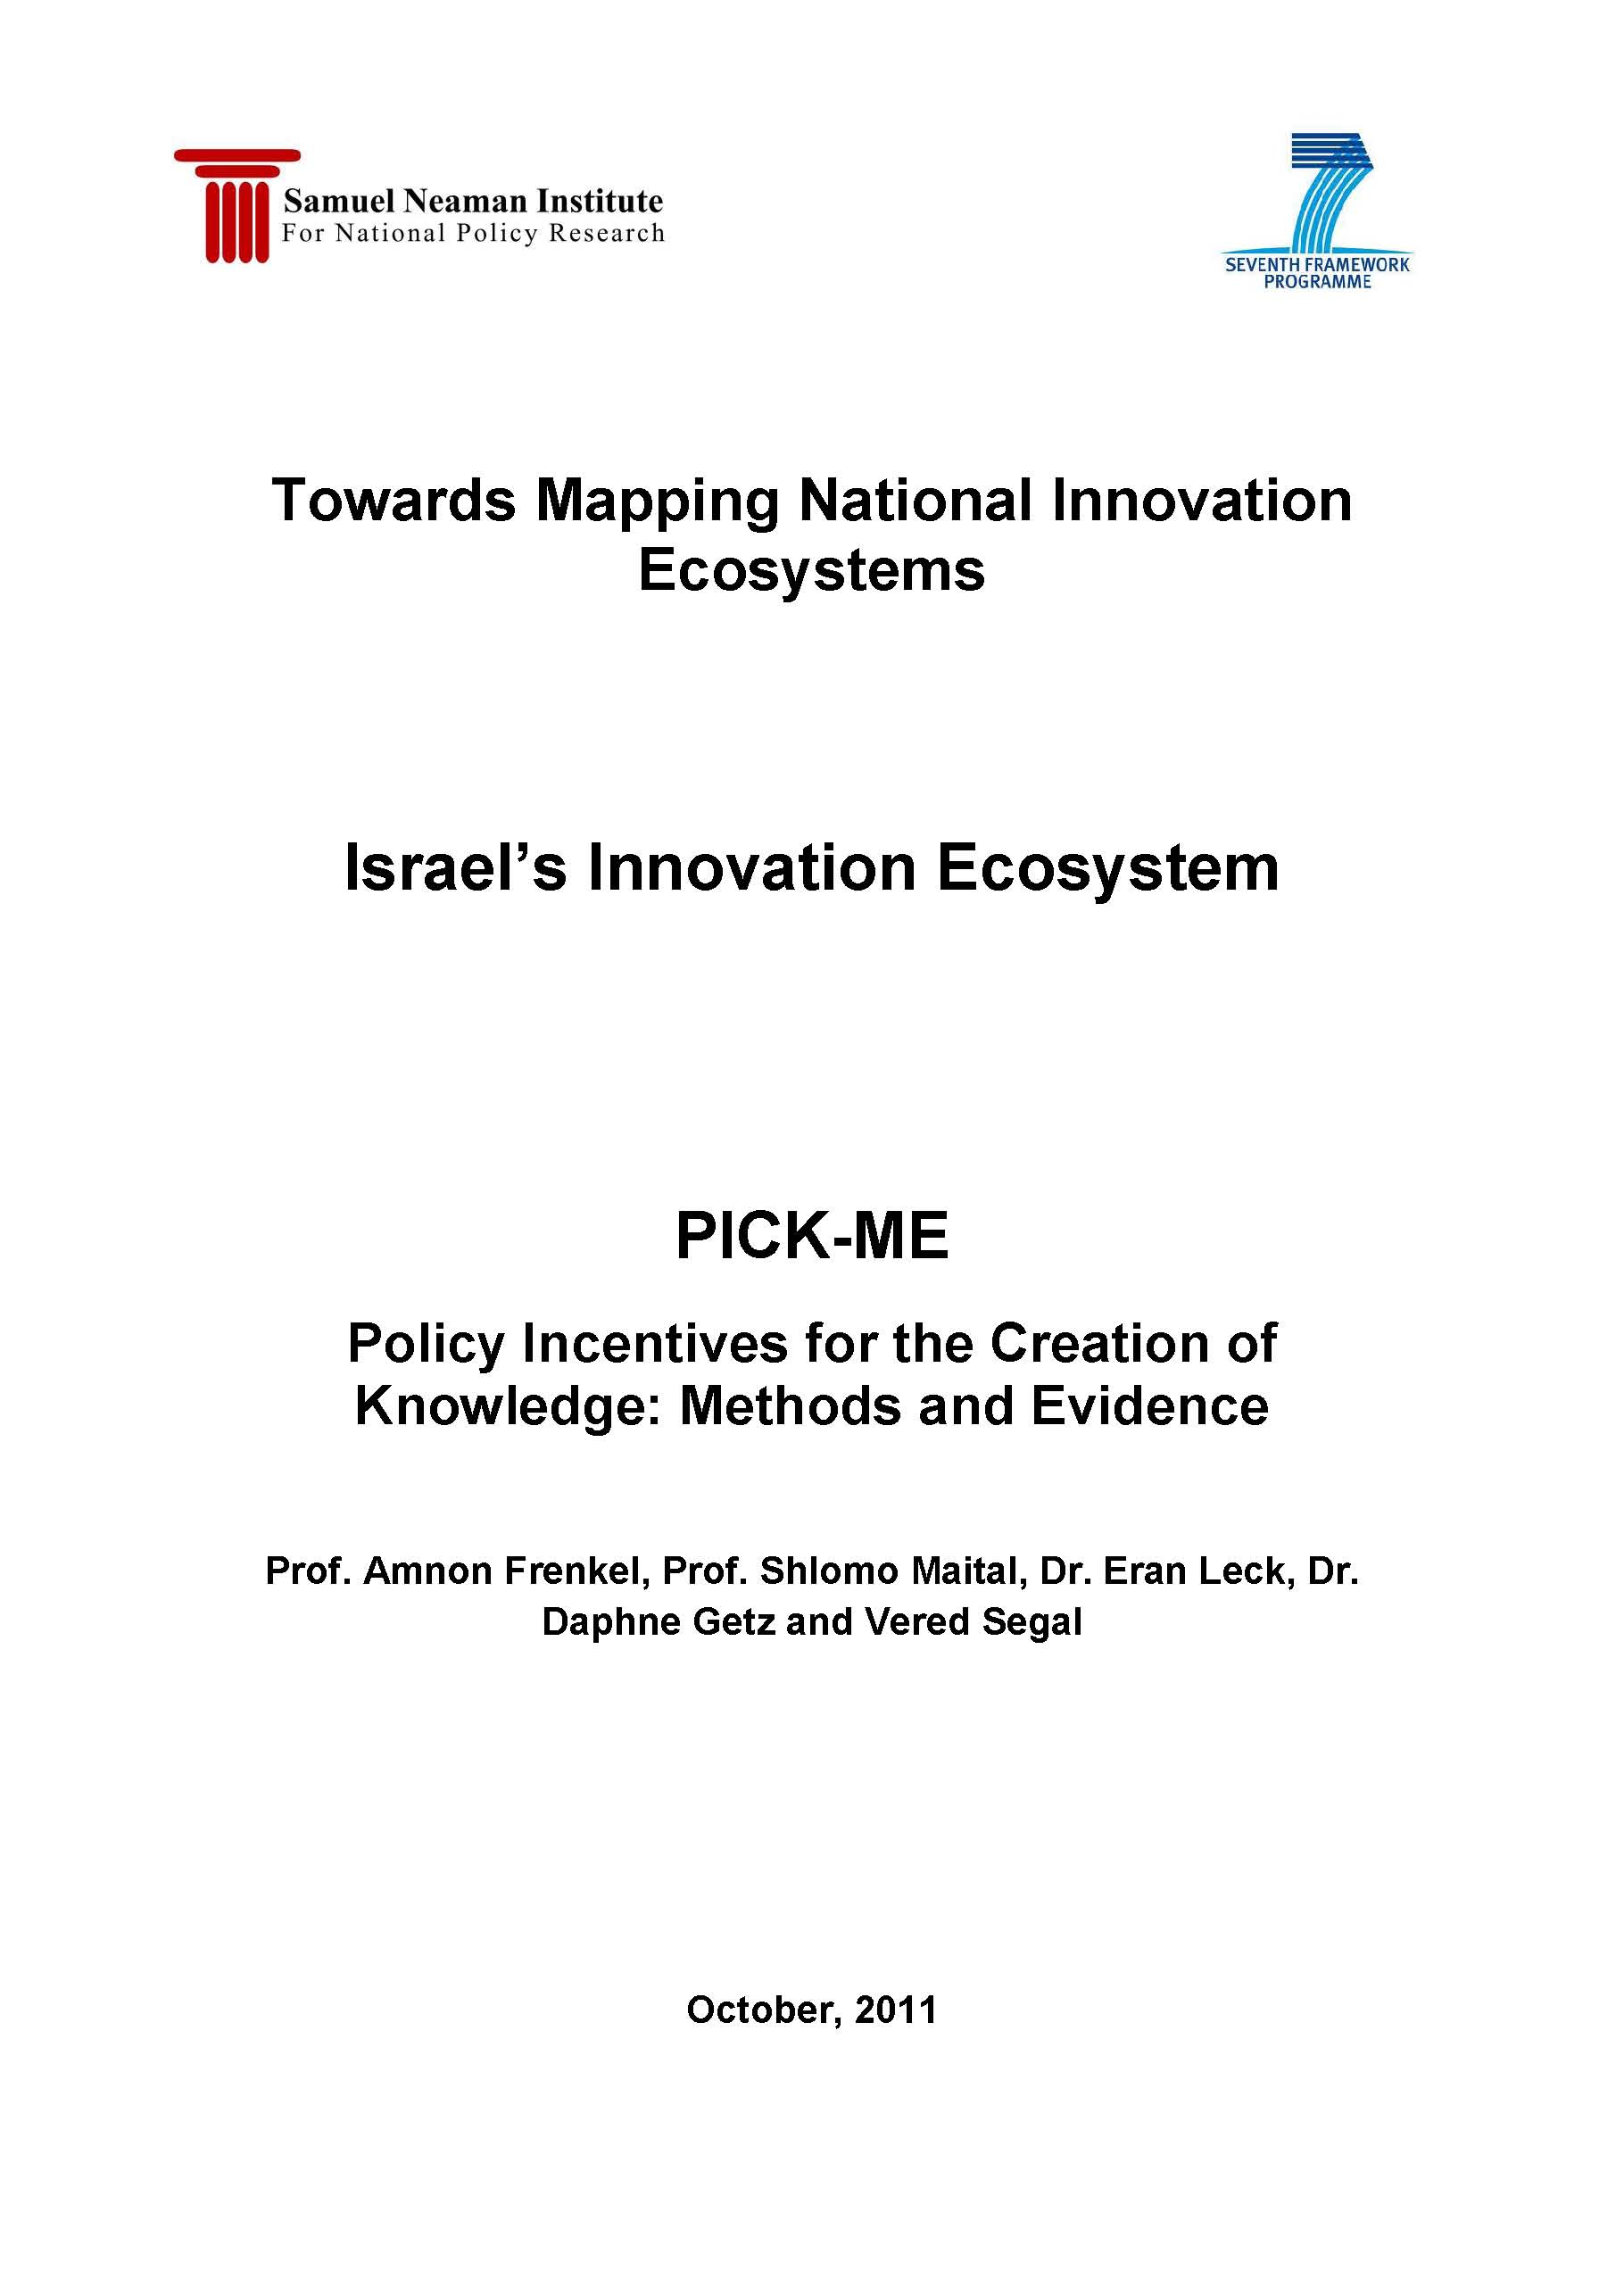 Towards Mapping National Innovation Ecosystem: Israel